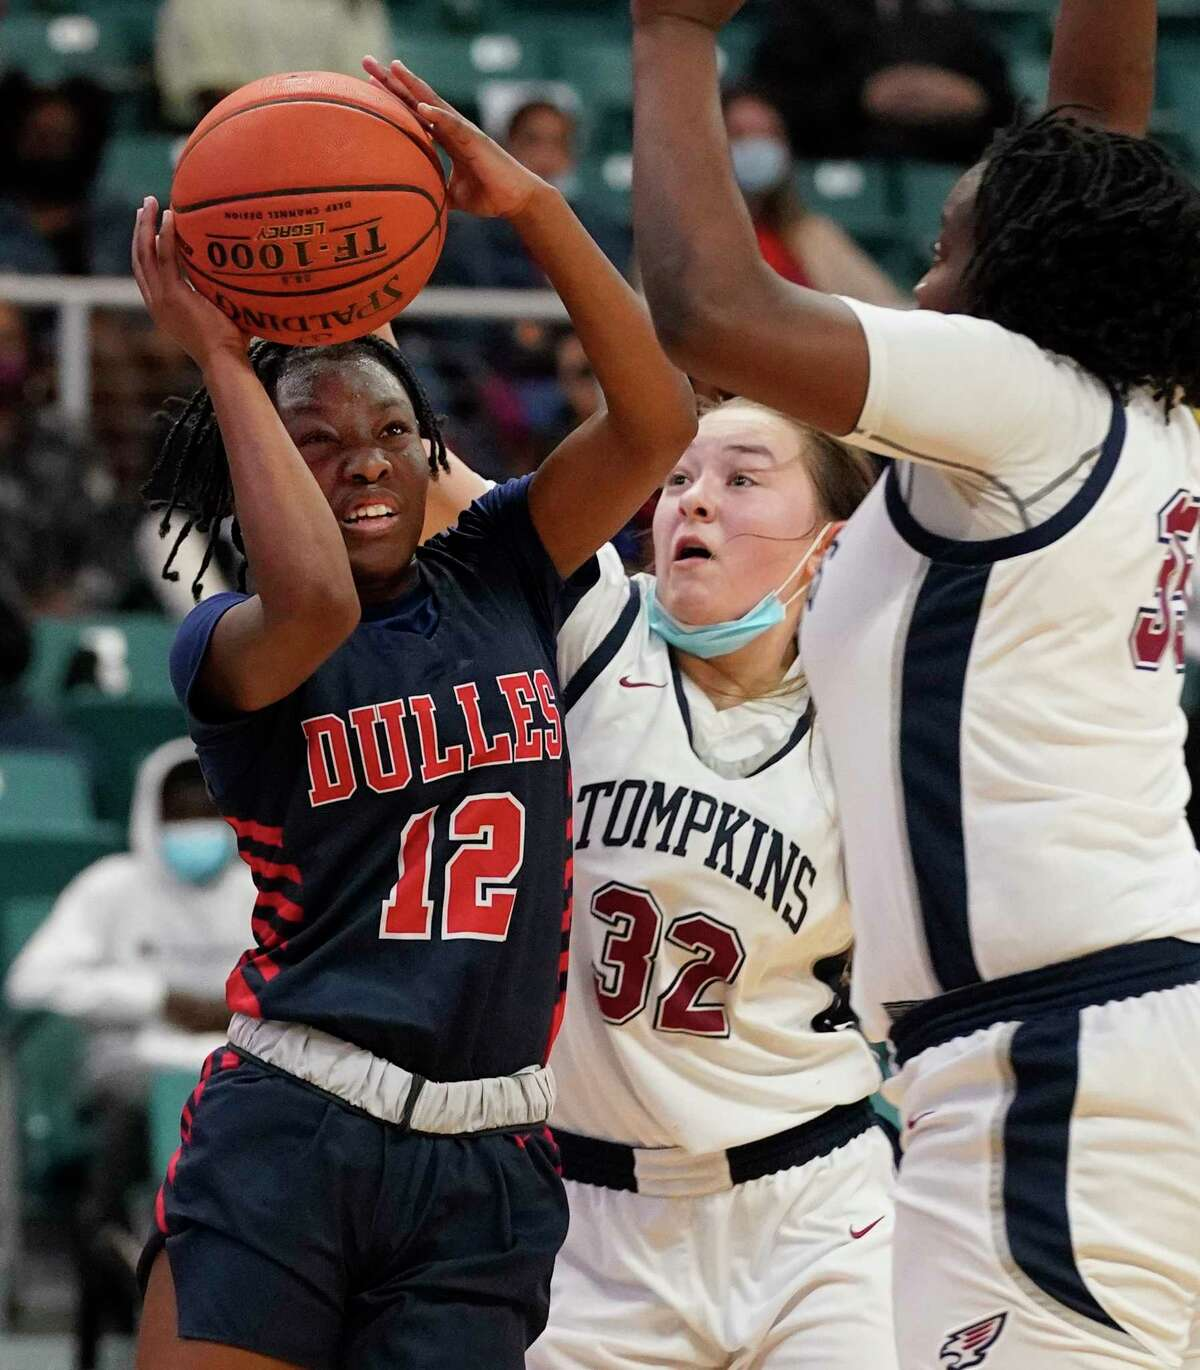 Dulles Nya Jakiya Thompson (12) looks to shoot around Tompkins Macy Spencer (32) and Fiyin Adeleye (35) during girls basketball playoff game at the Merrell Center Wednesday, Feb. 24, 2021 in Katy.